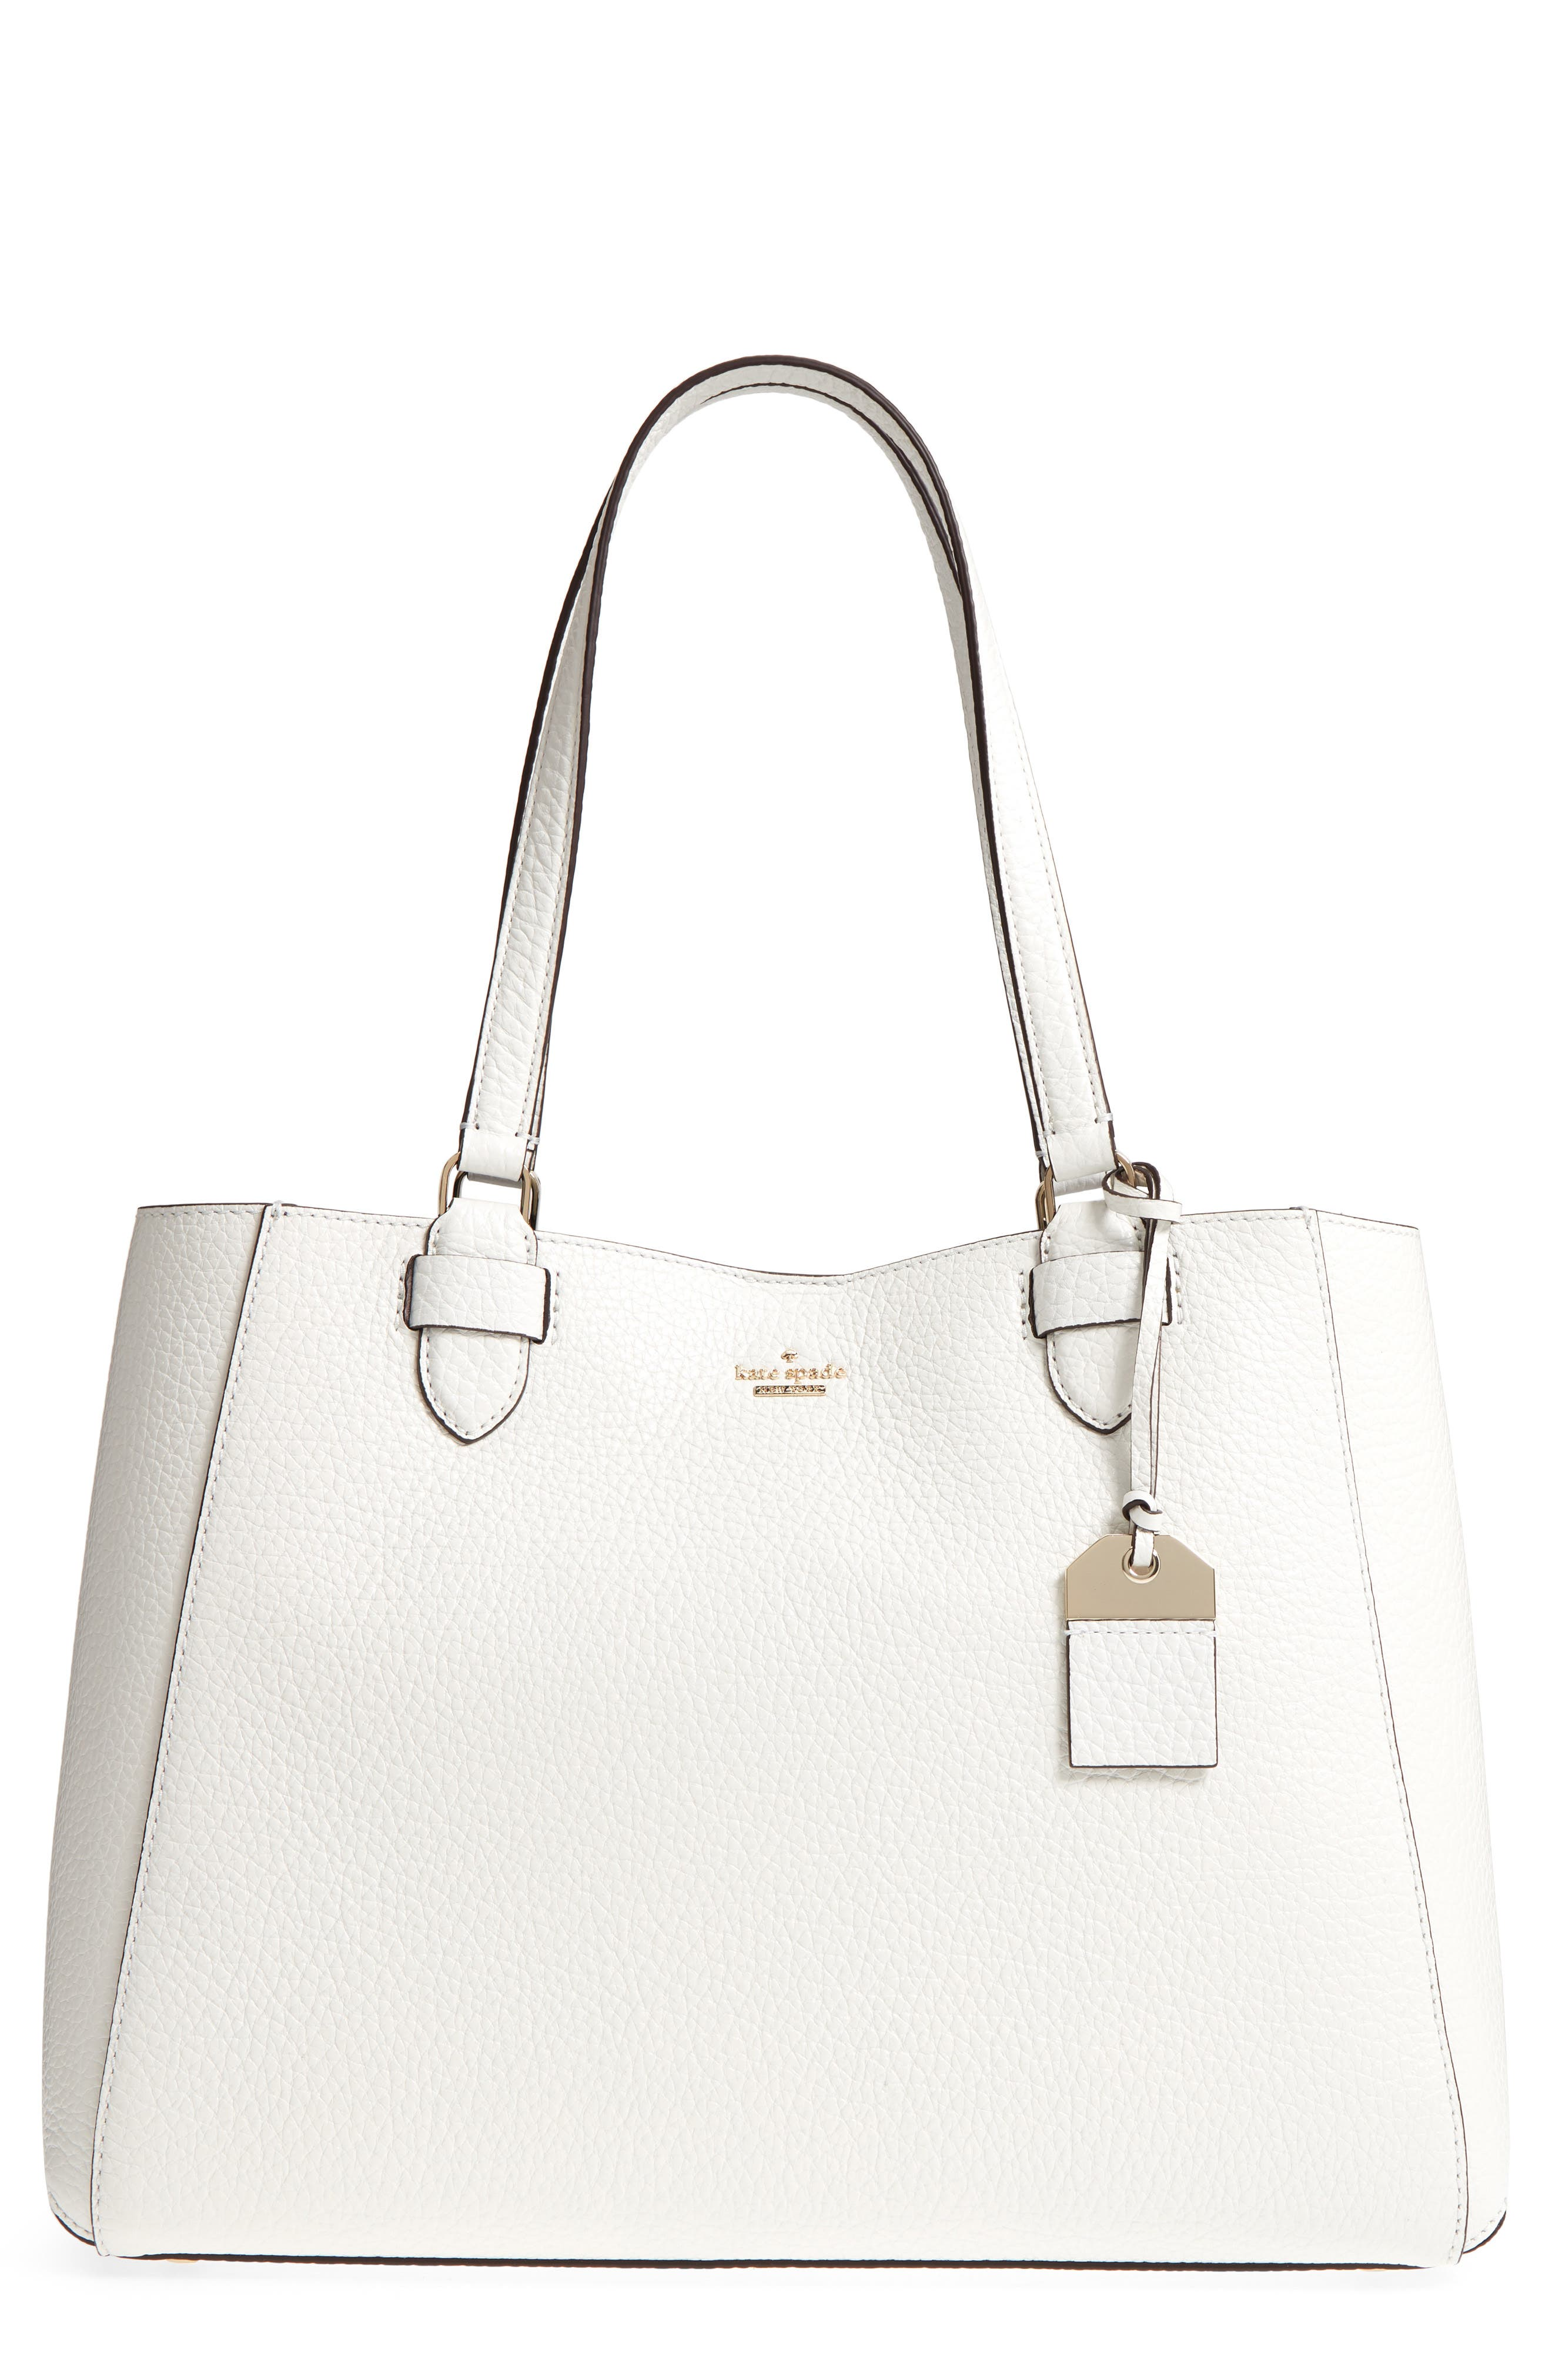 carter street - tyler leather tote,                         Main,                         color, Bright White